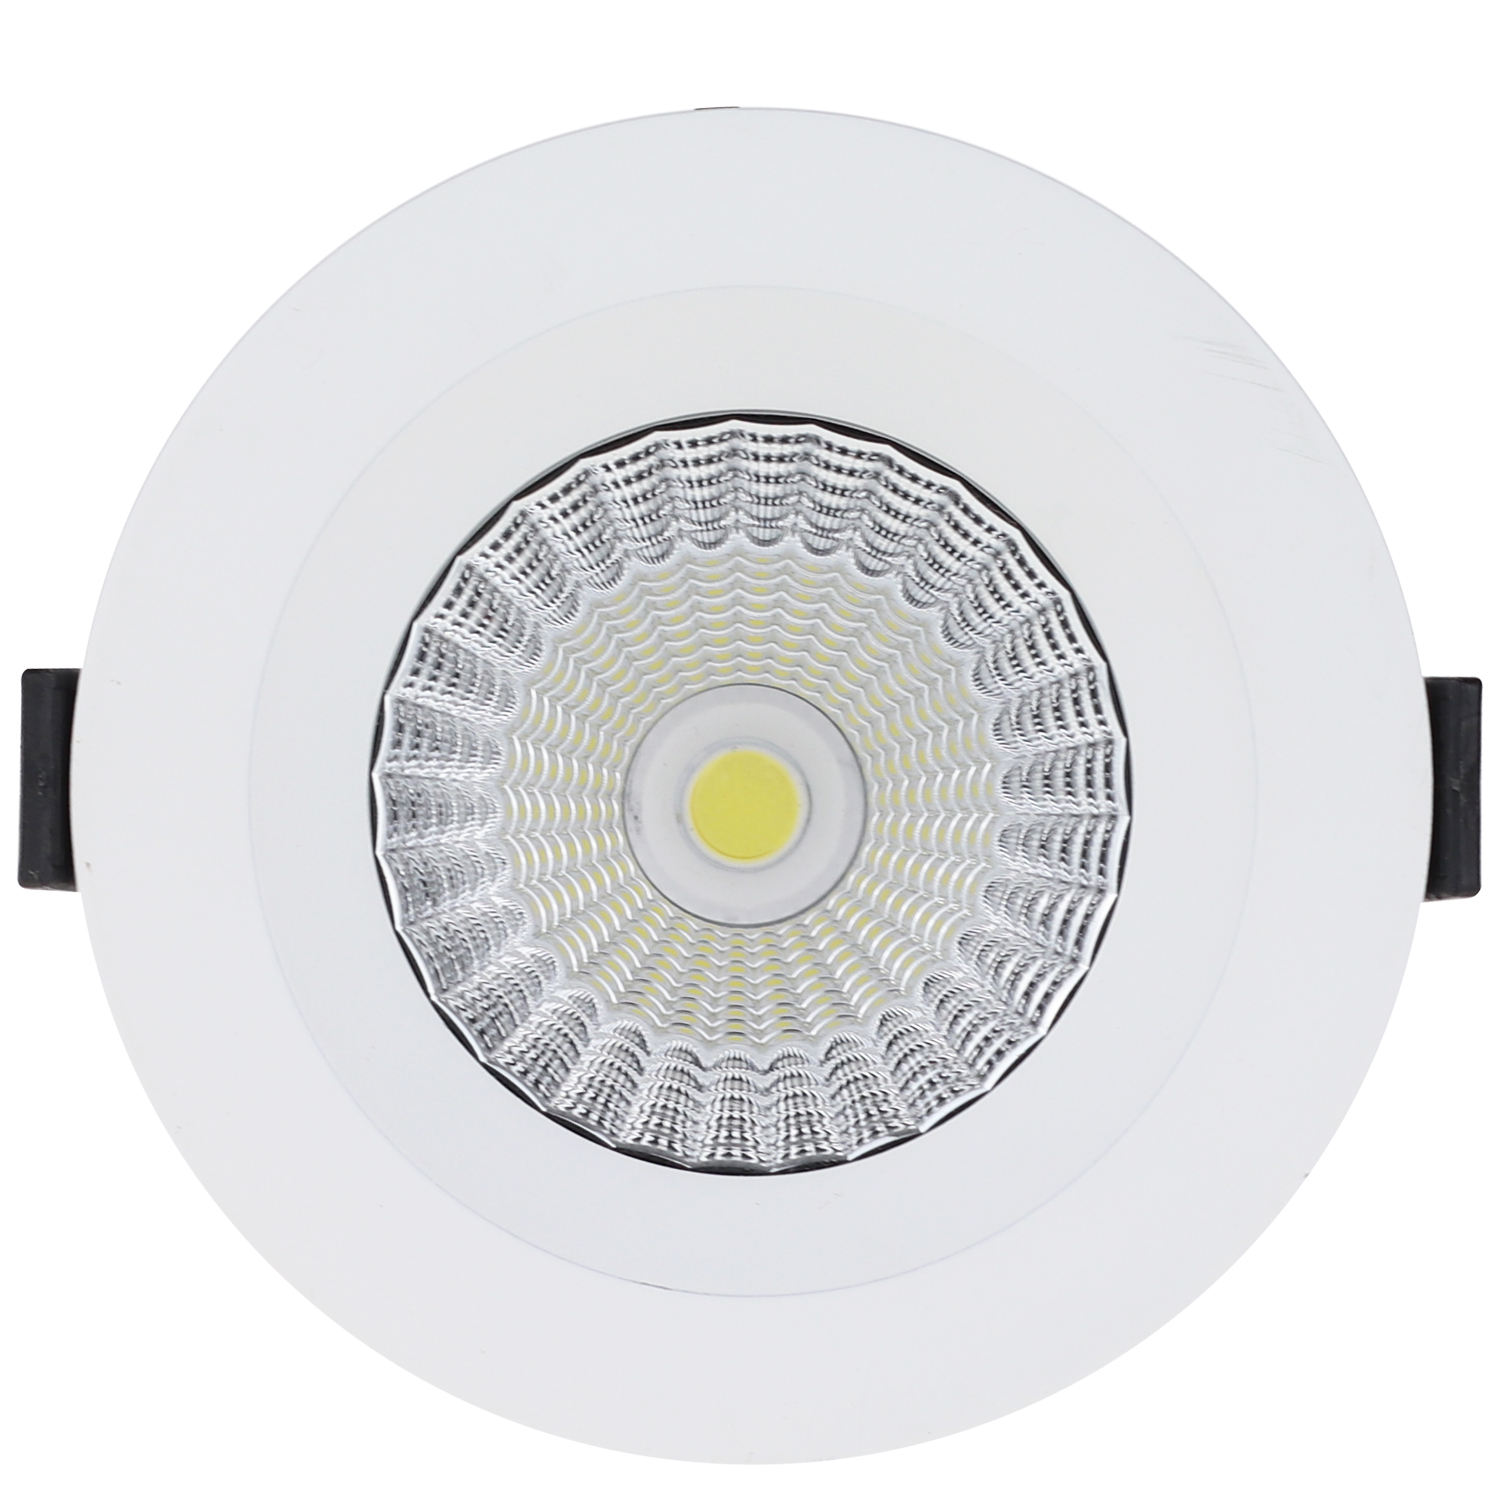 하이 파워 욕실 통 12W 15W 18W 20W 25W 30W 45W 50W 둥근 Cob 방수 통 IP65 Dimmable Downlight